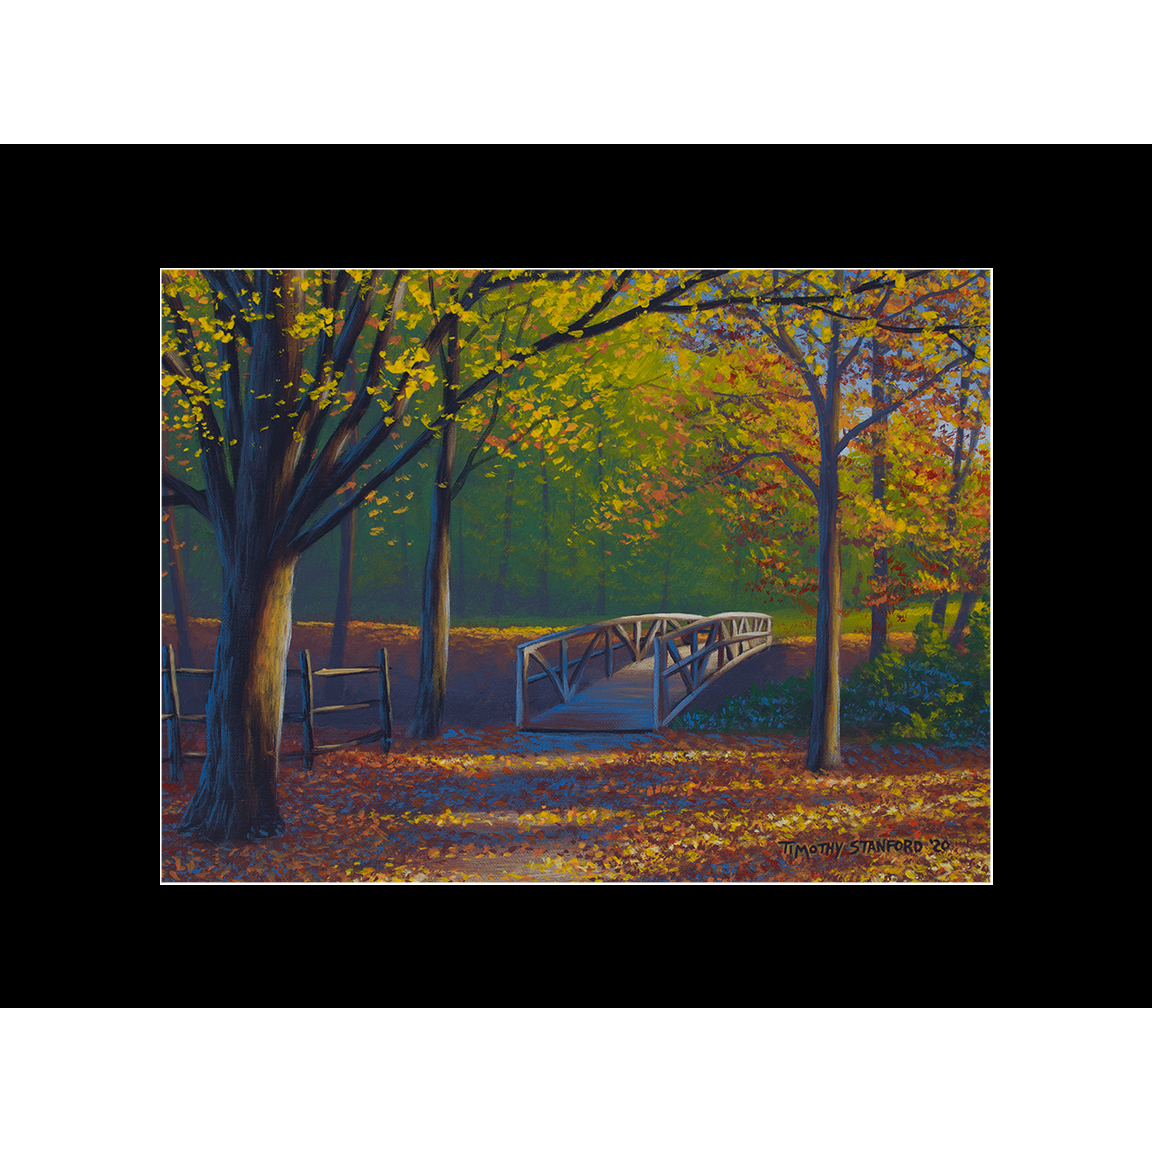 """Fine art matted print of Timothy Stanford's original acrylic painting """"Bridge of Promise"""""""